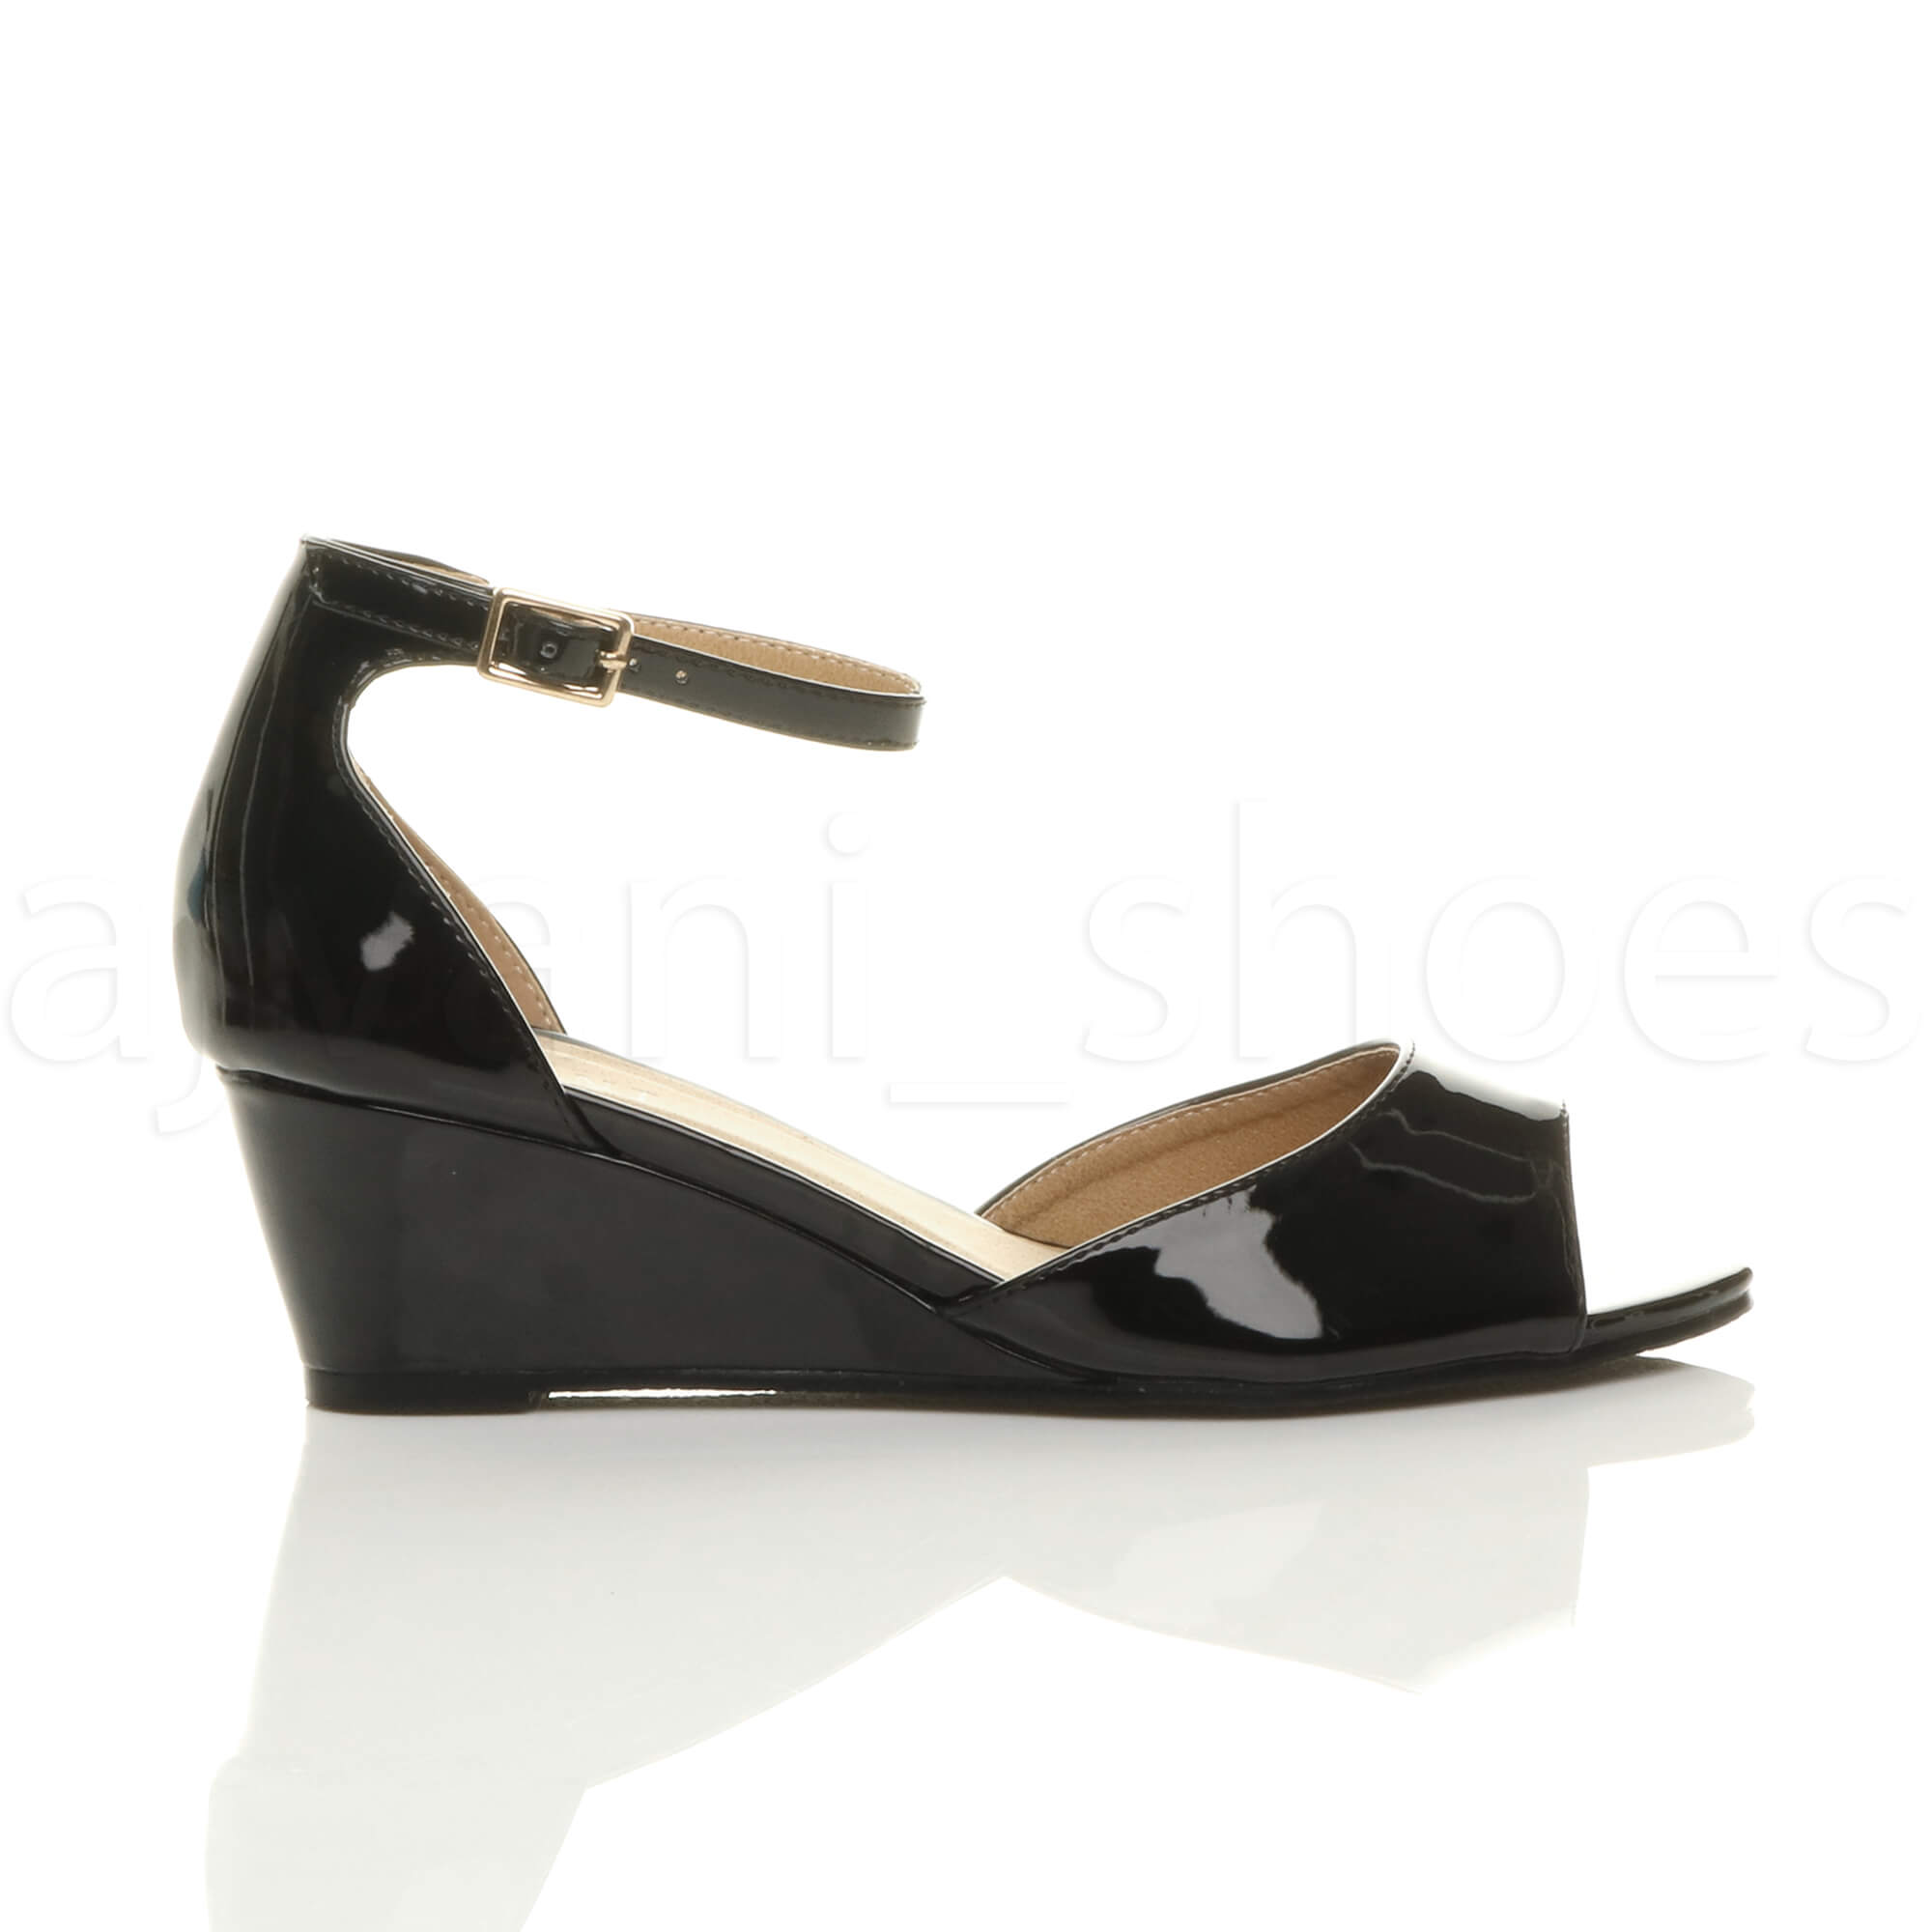 WOMENS-LADIES-LOW-MID-WEDGE-HEEL-ANKLE-STRAP-SMART-CASUAL-EVENING-SANDALS-SIZE thumbnail 11